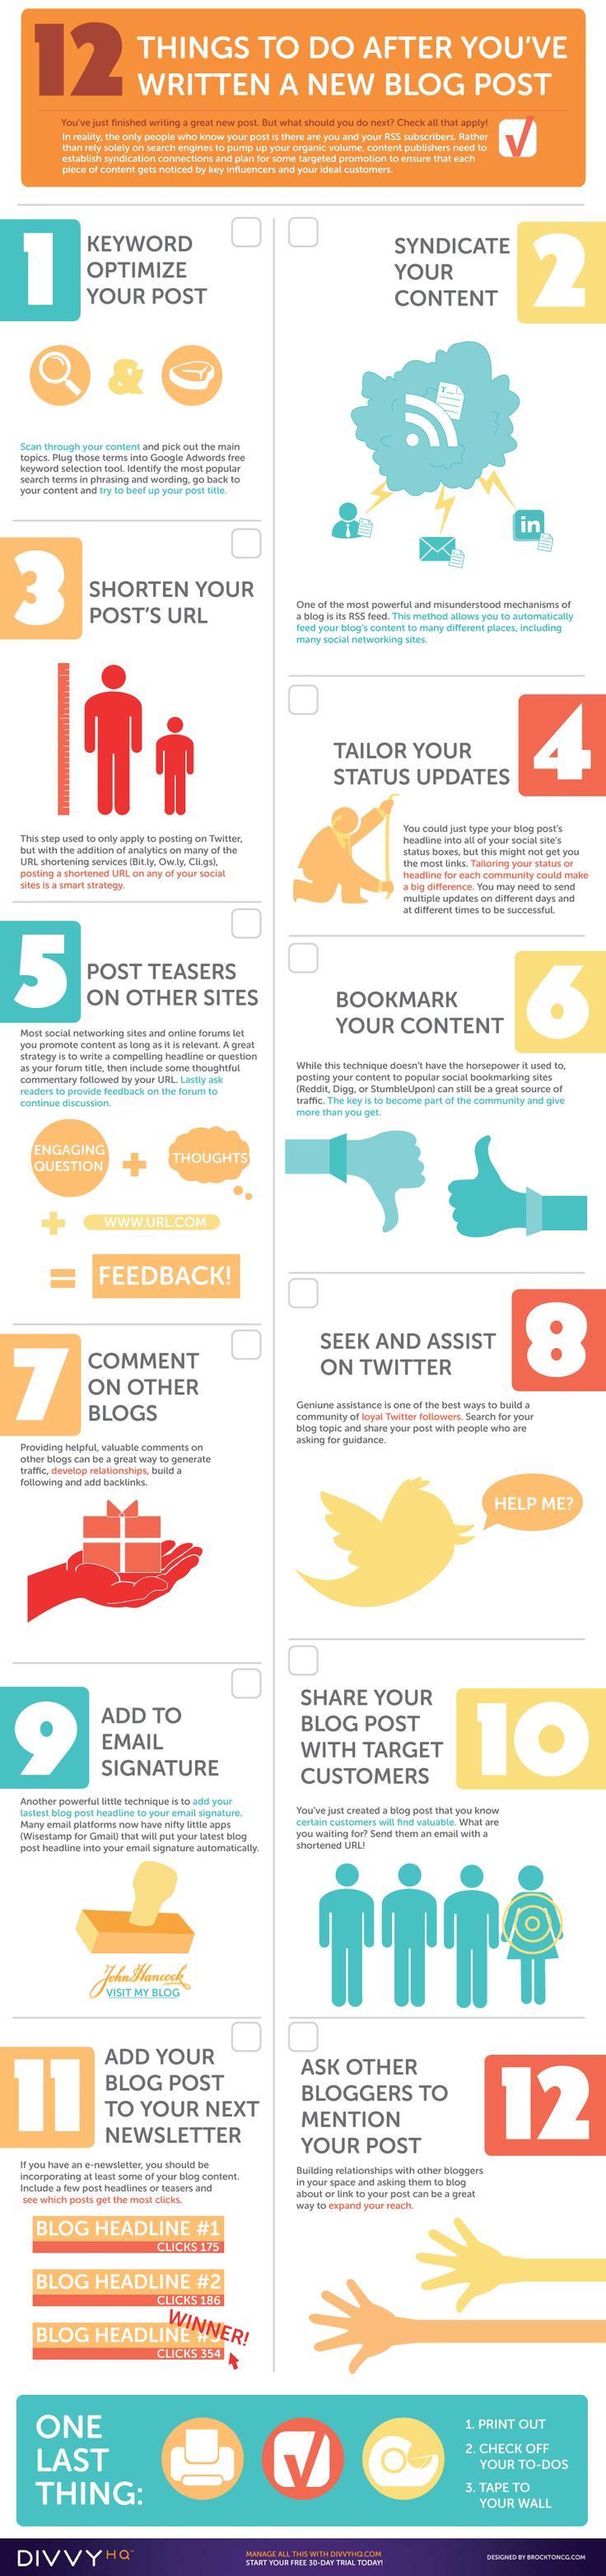 12 things to do after your next blog post! Lots of great ideas here for maximizing your social media presence! #infographic #socialmedia